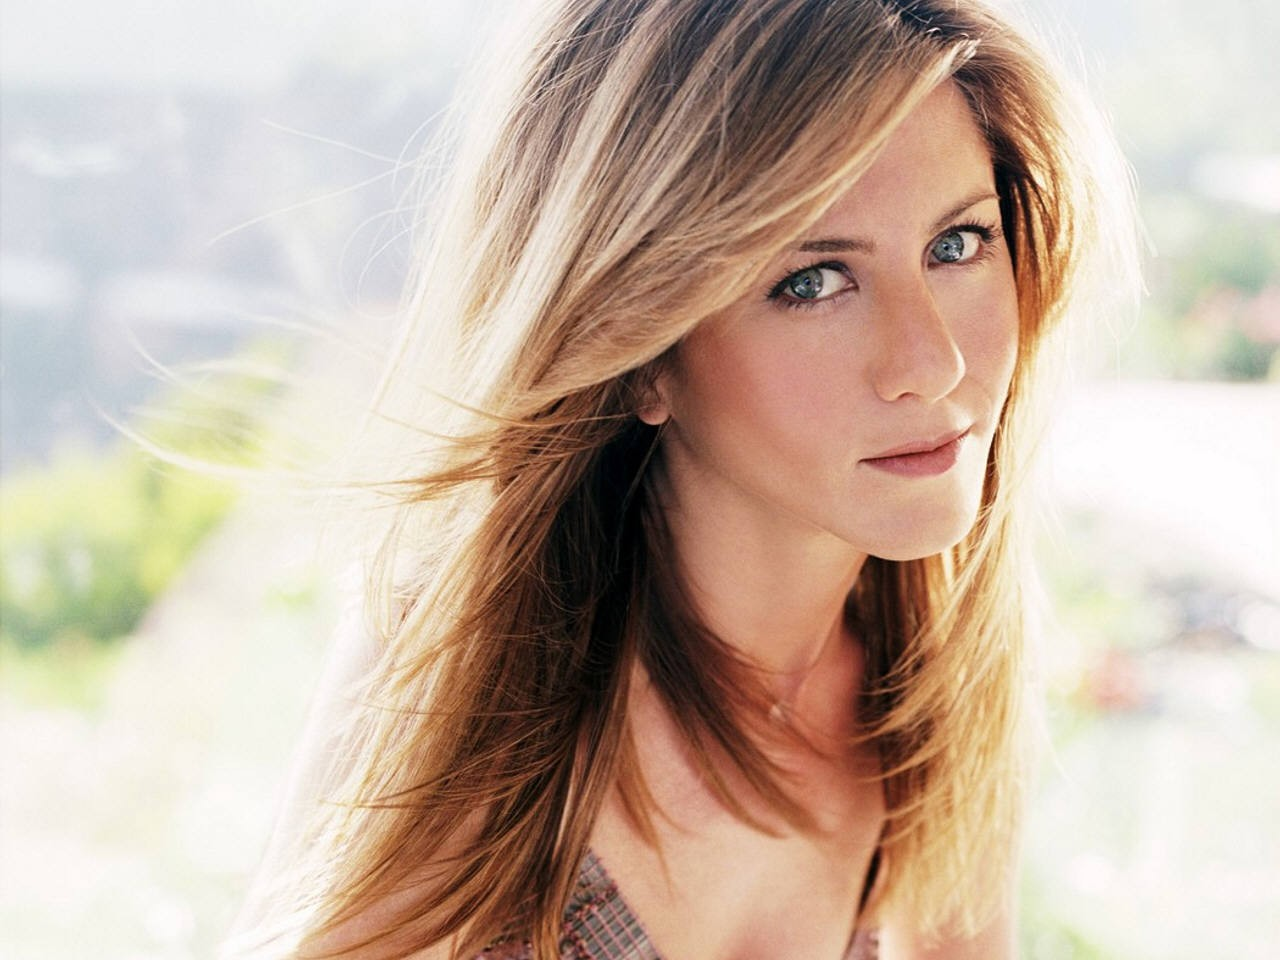 Jennifer Aniston HD Desktop wallpaper